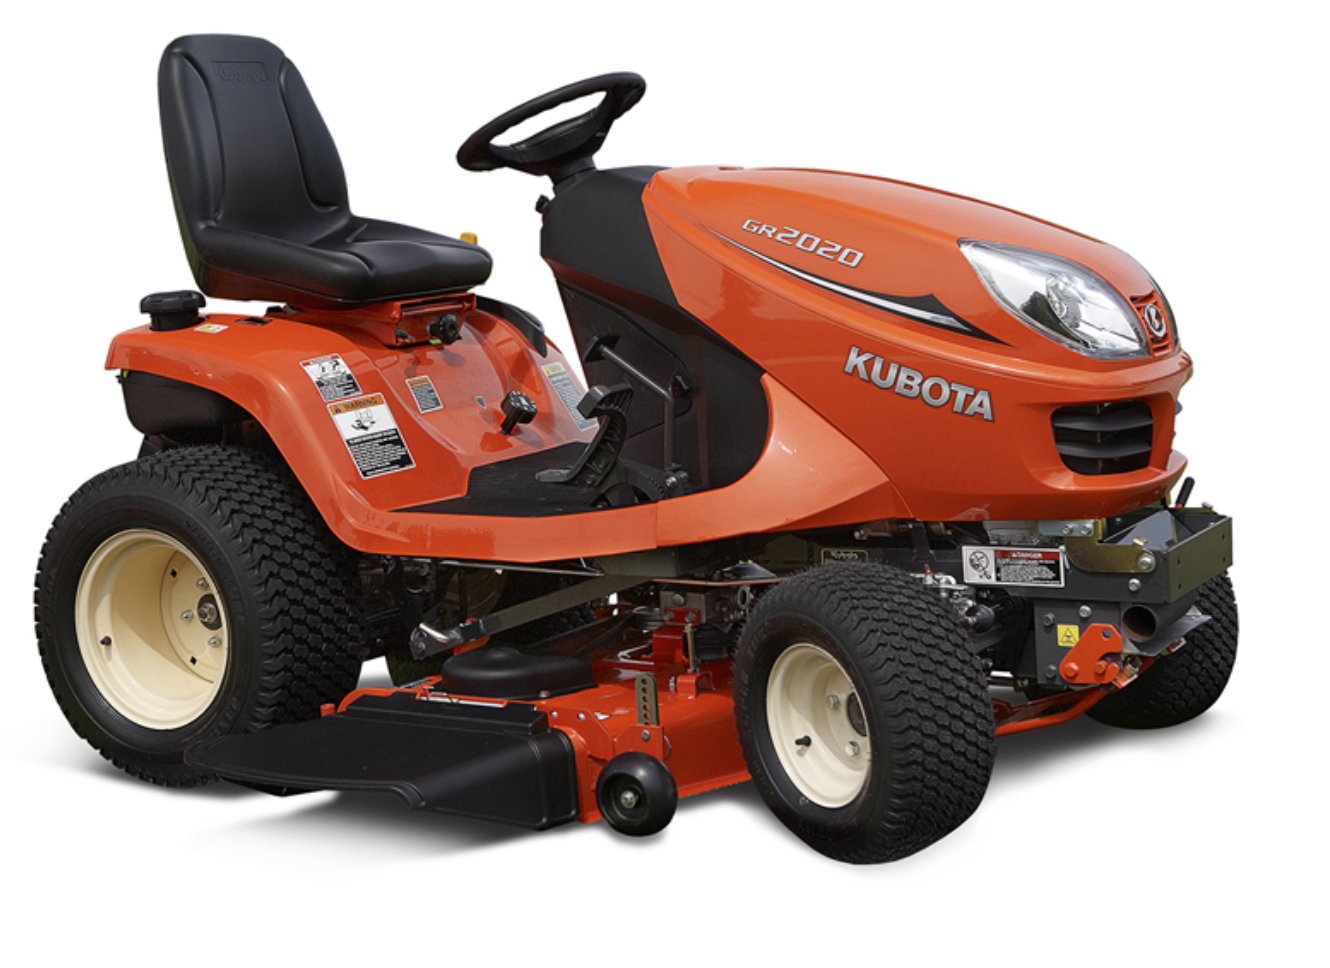 Kubota 20HP Gas GR2020 Lawn and Garden Tractor